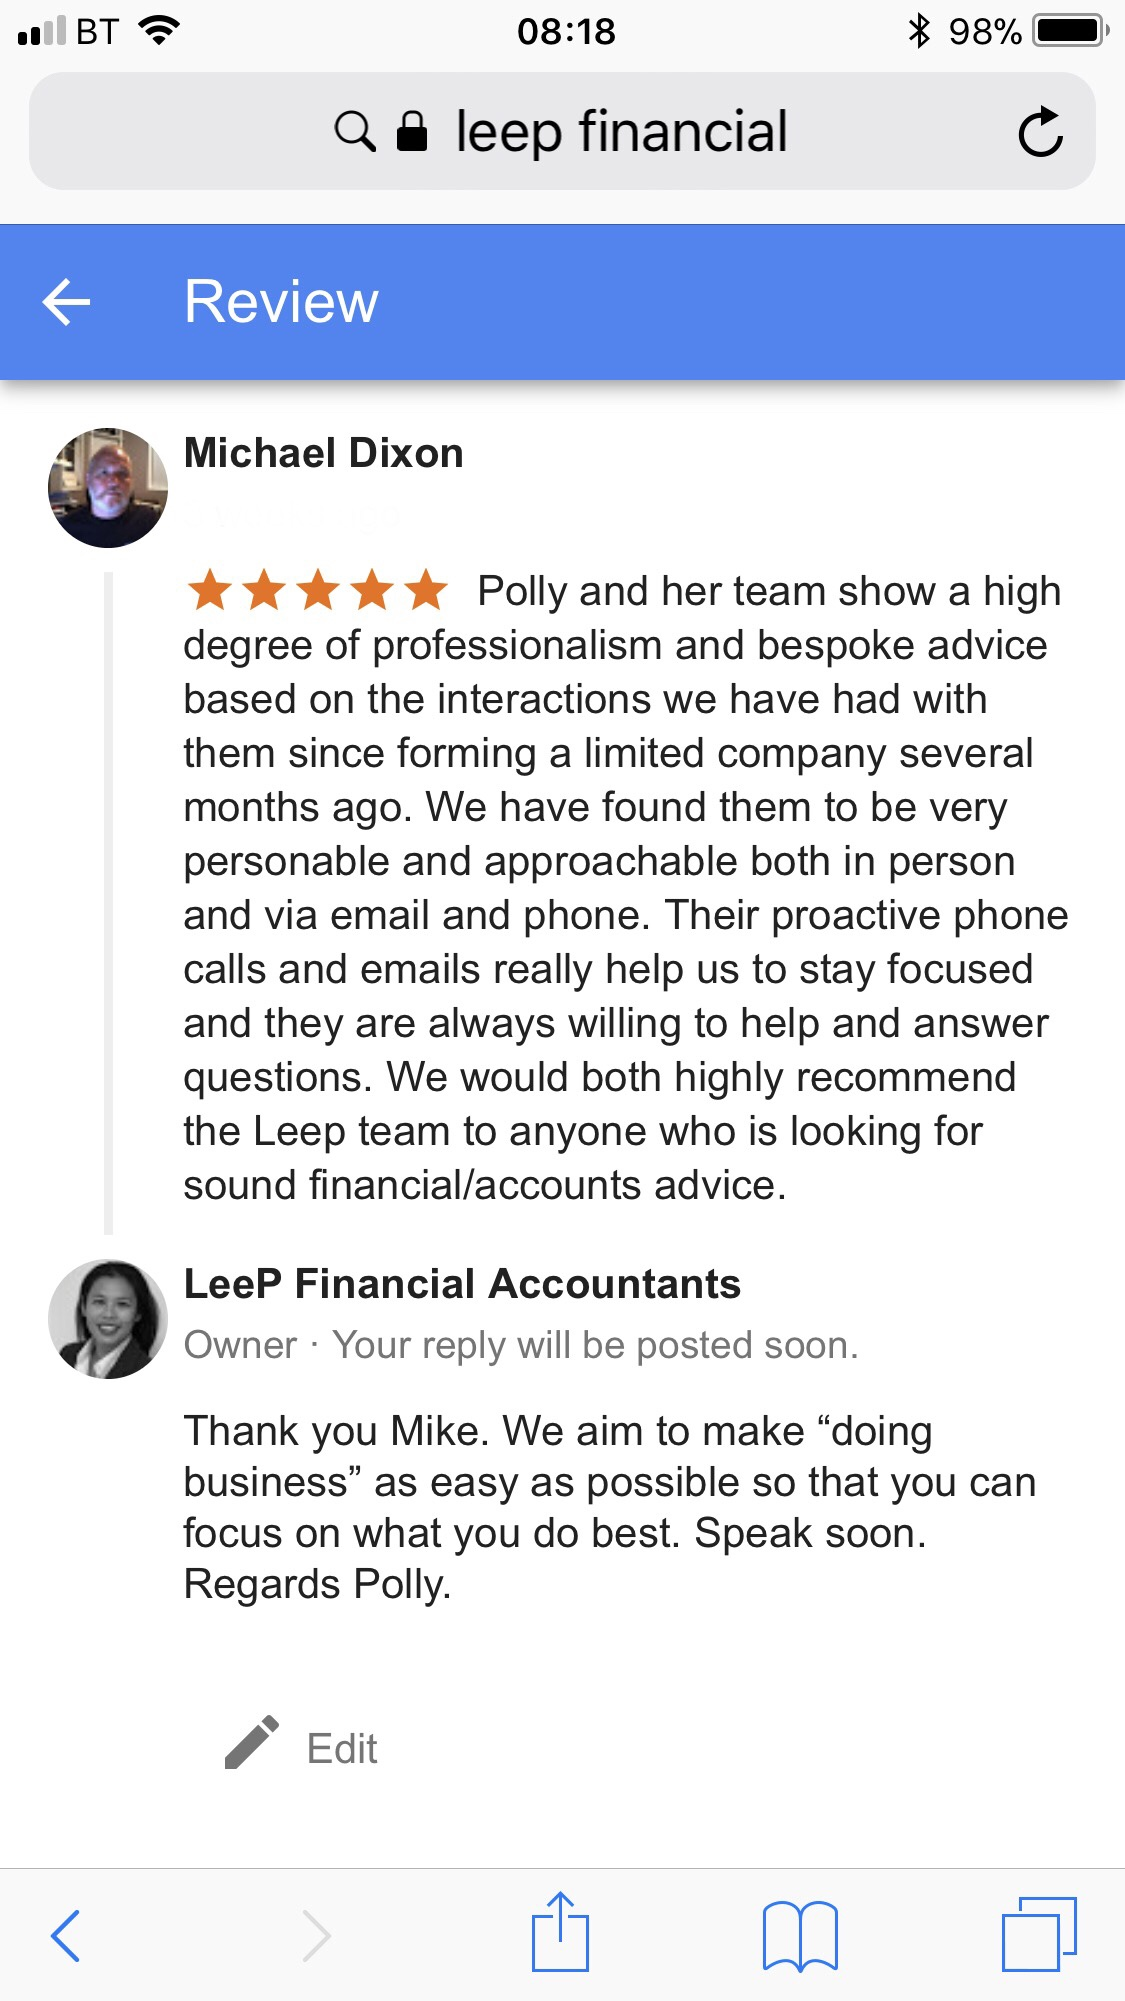 LeeP Financial Accountants Google review